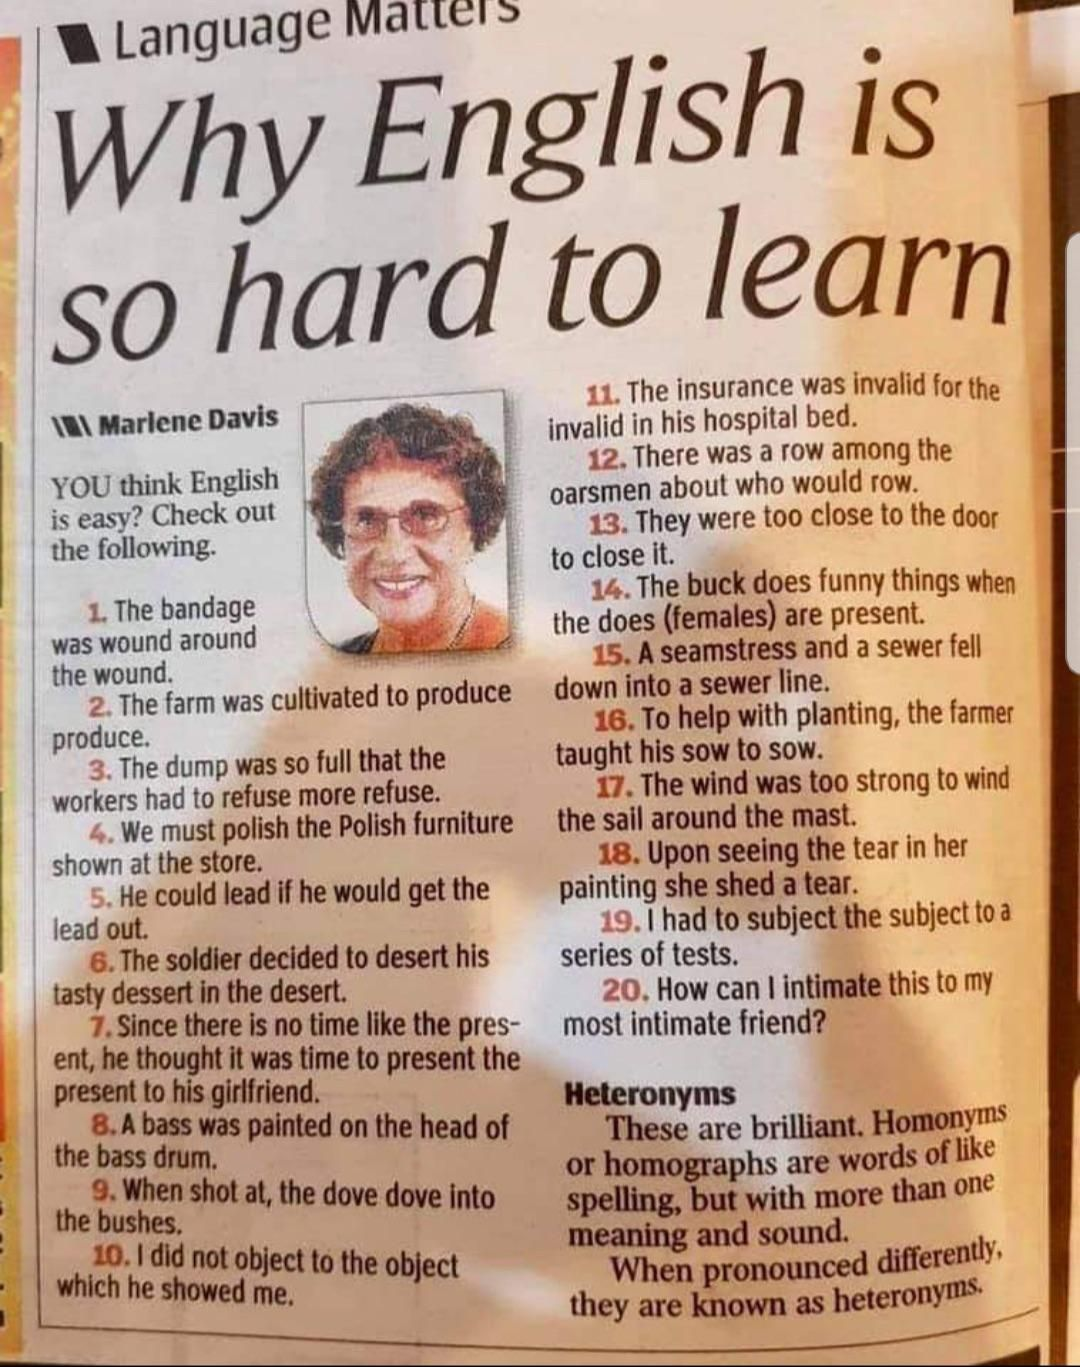 English is thoroughly tough